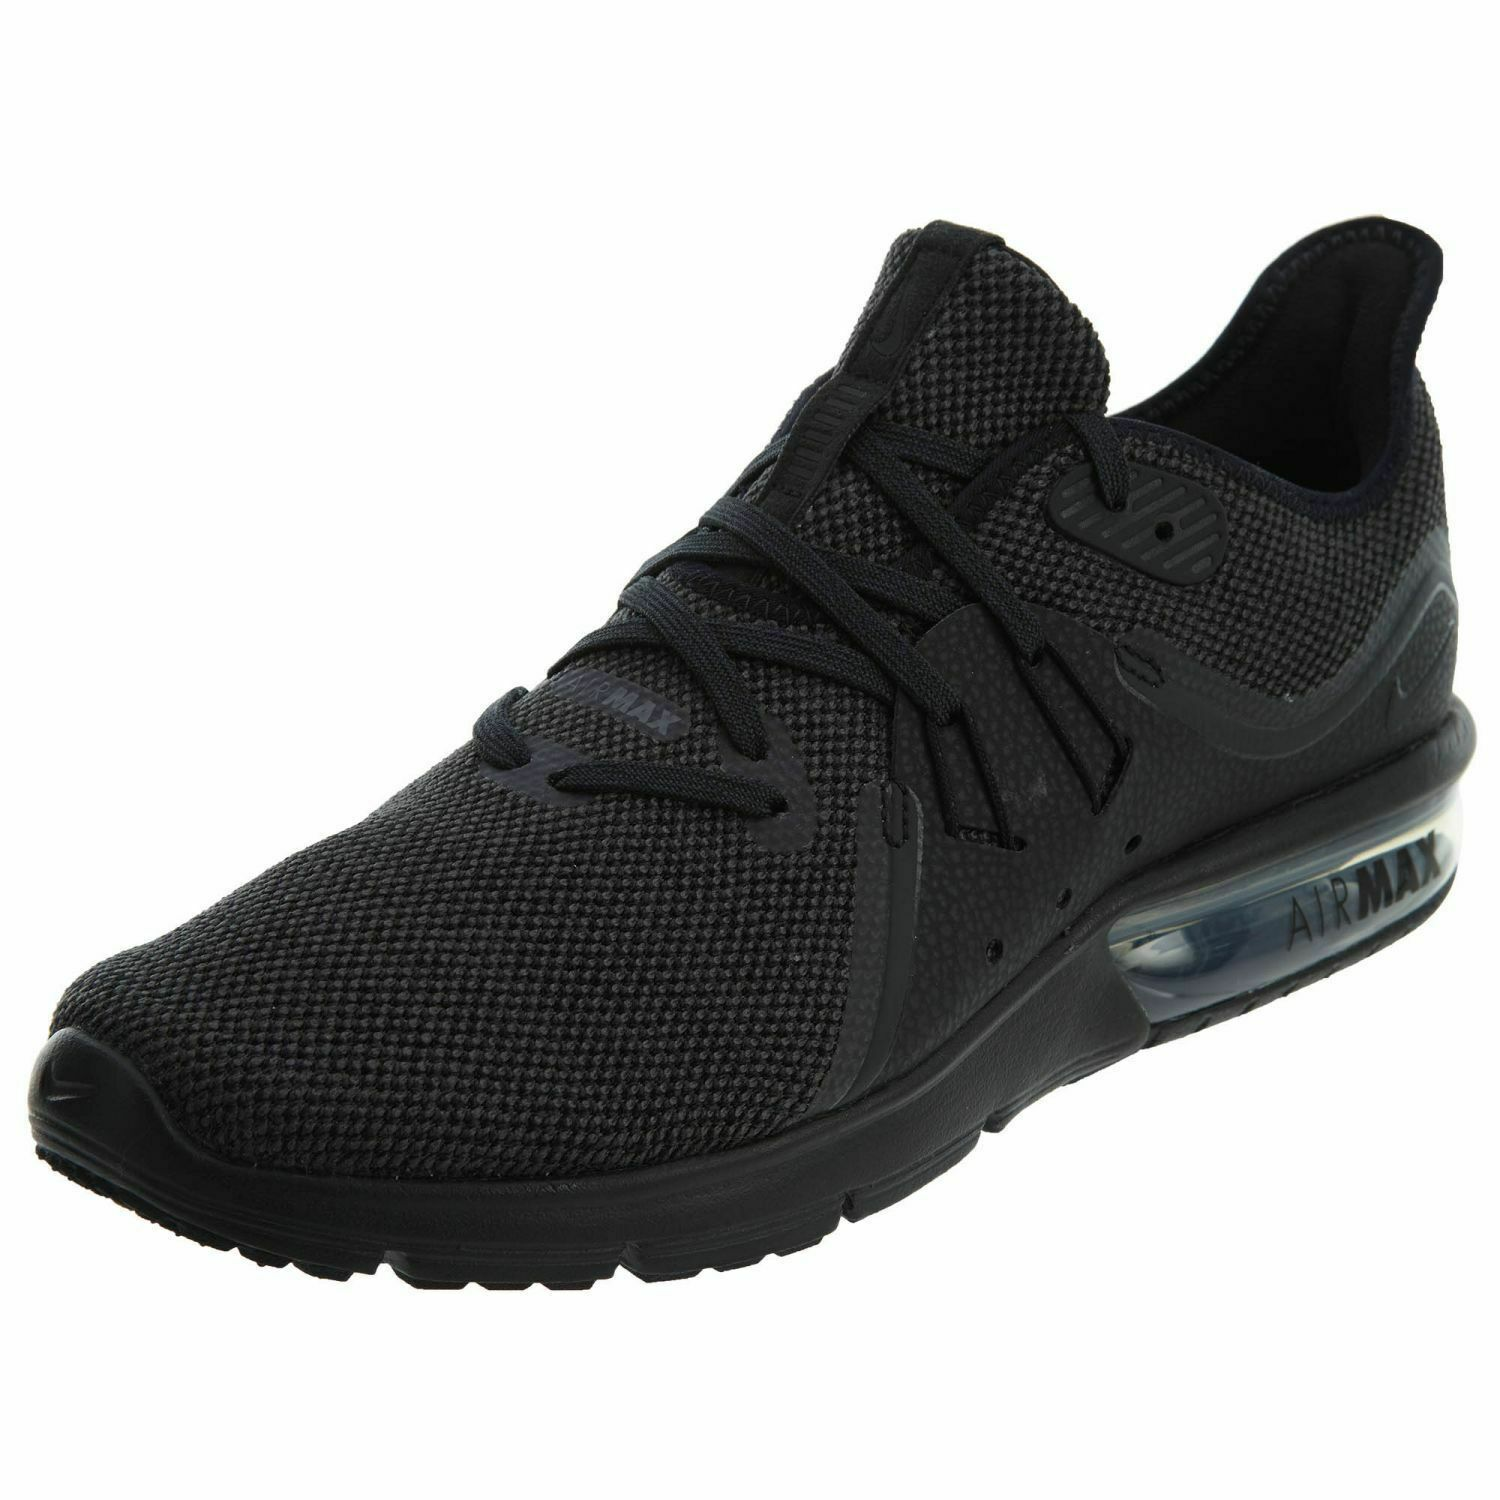 Nike Air Max Sequent 3 Running shoes Black Anthracite 921694-010 Men's NEW